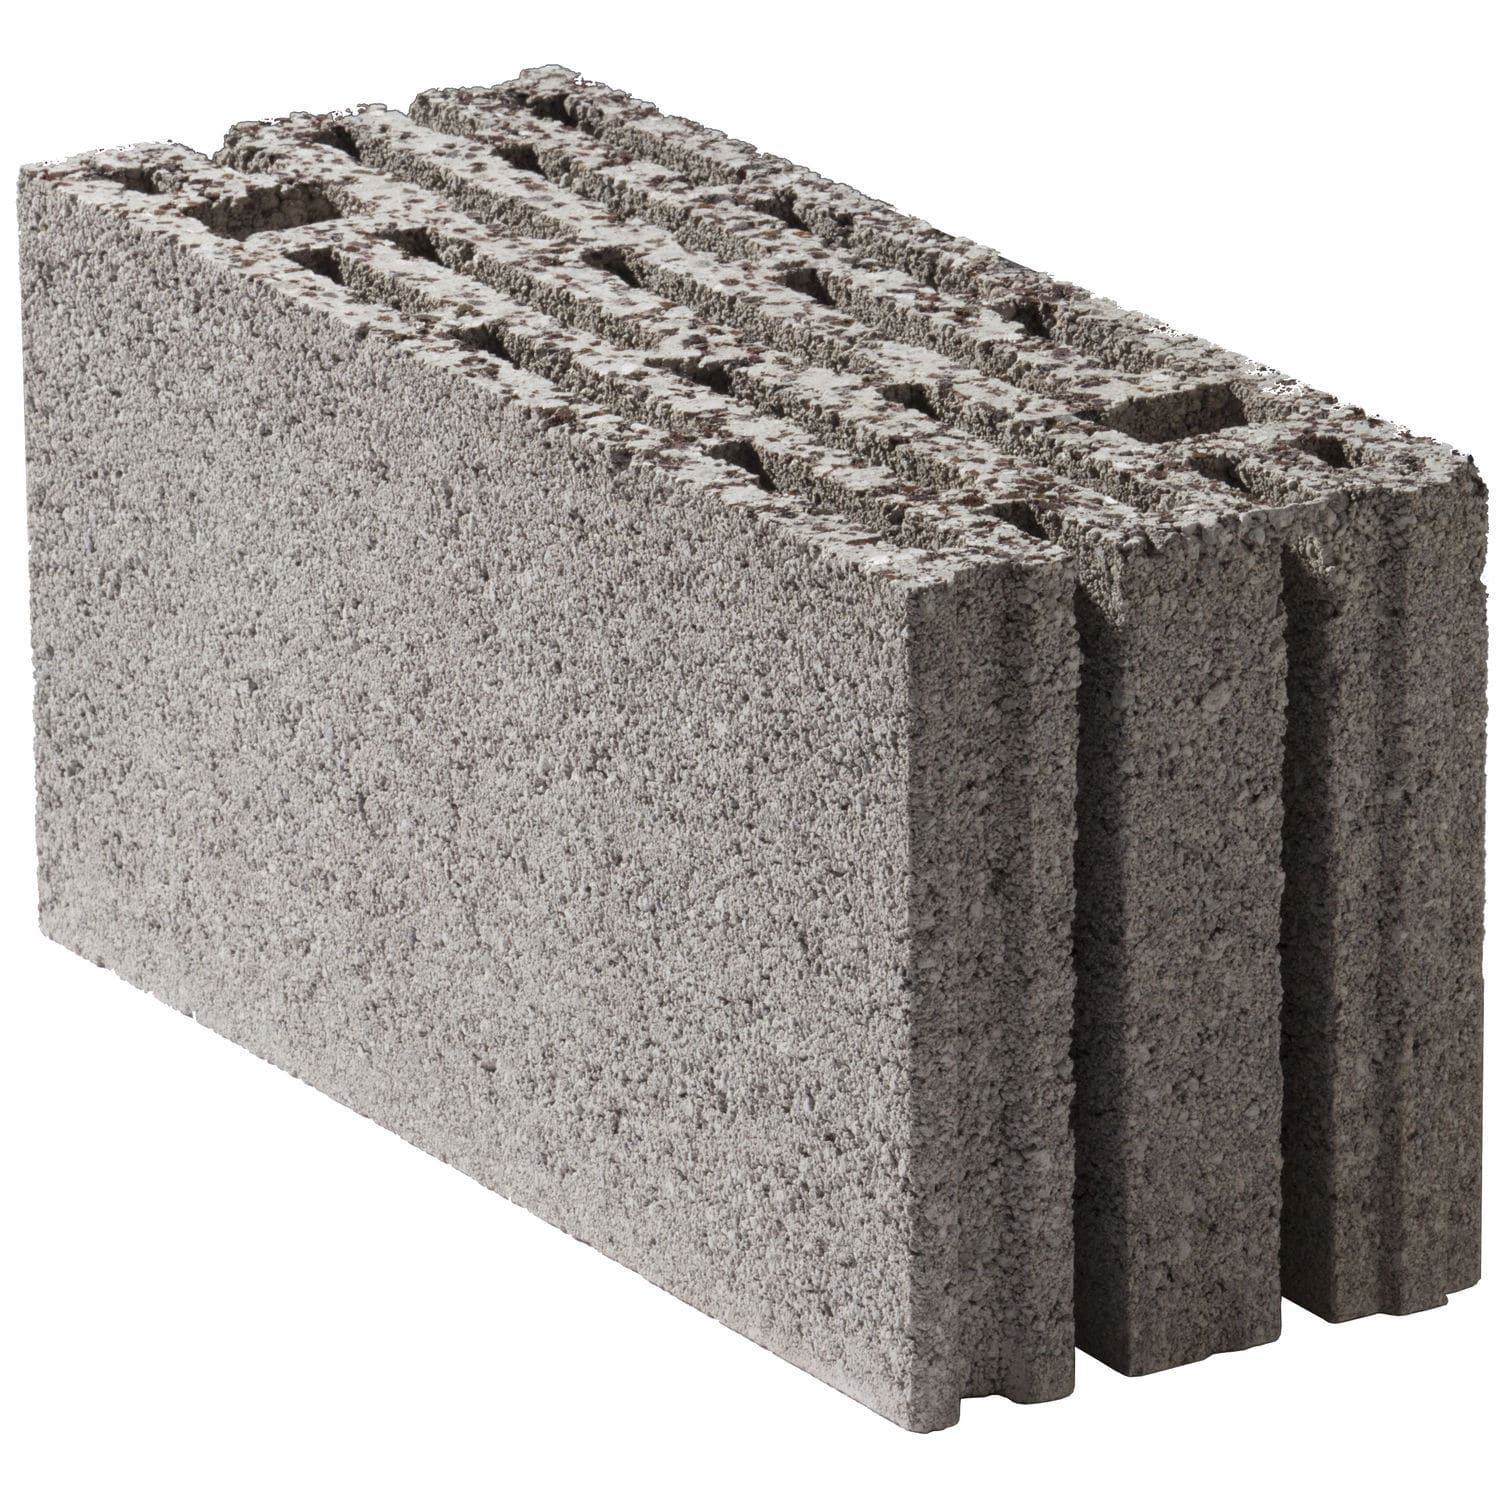 Lightweight Concrete Block / For Walls / For Lintels / Anti Seismic ...